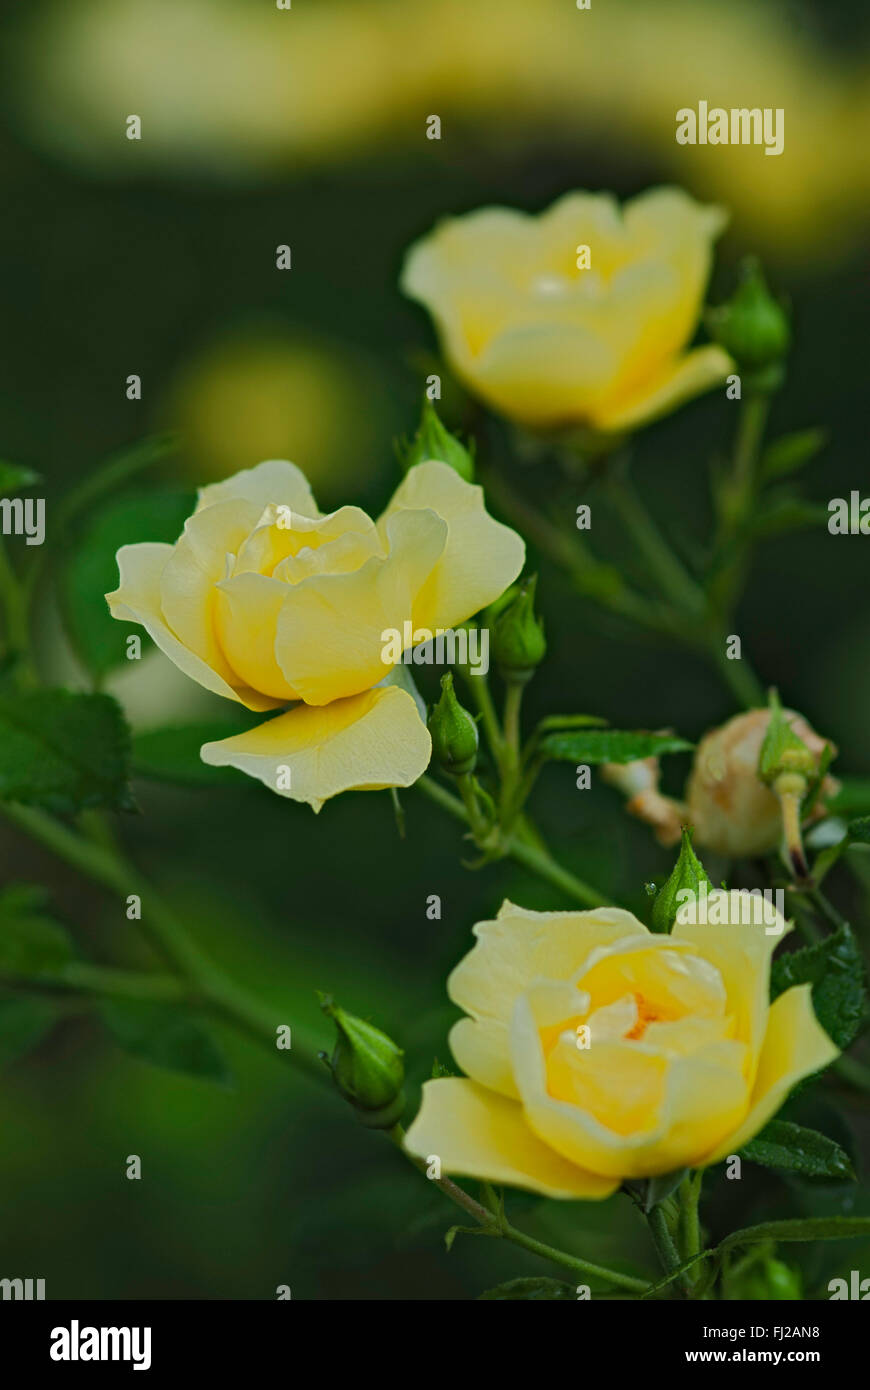 Flower Carpet Rose Stock Photos Flower Carpet Rose Stock Images